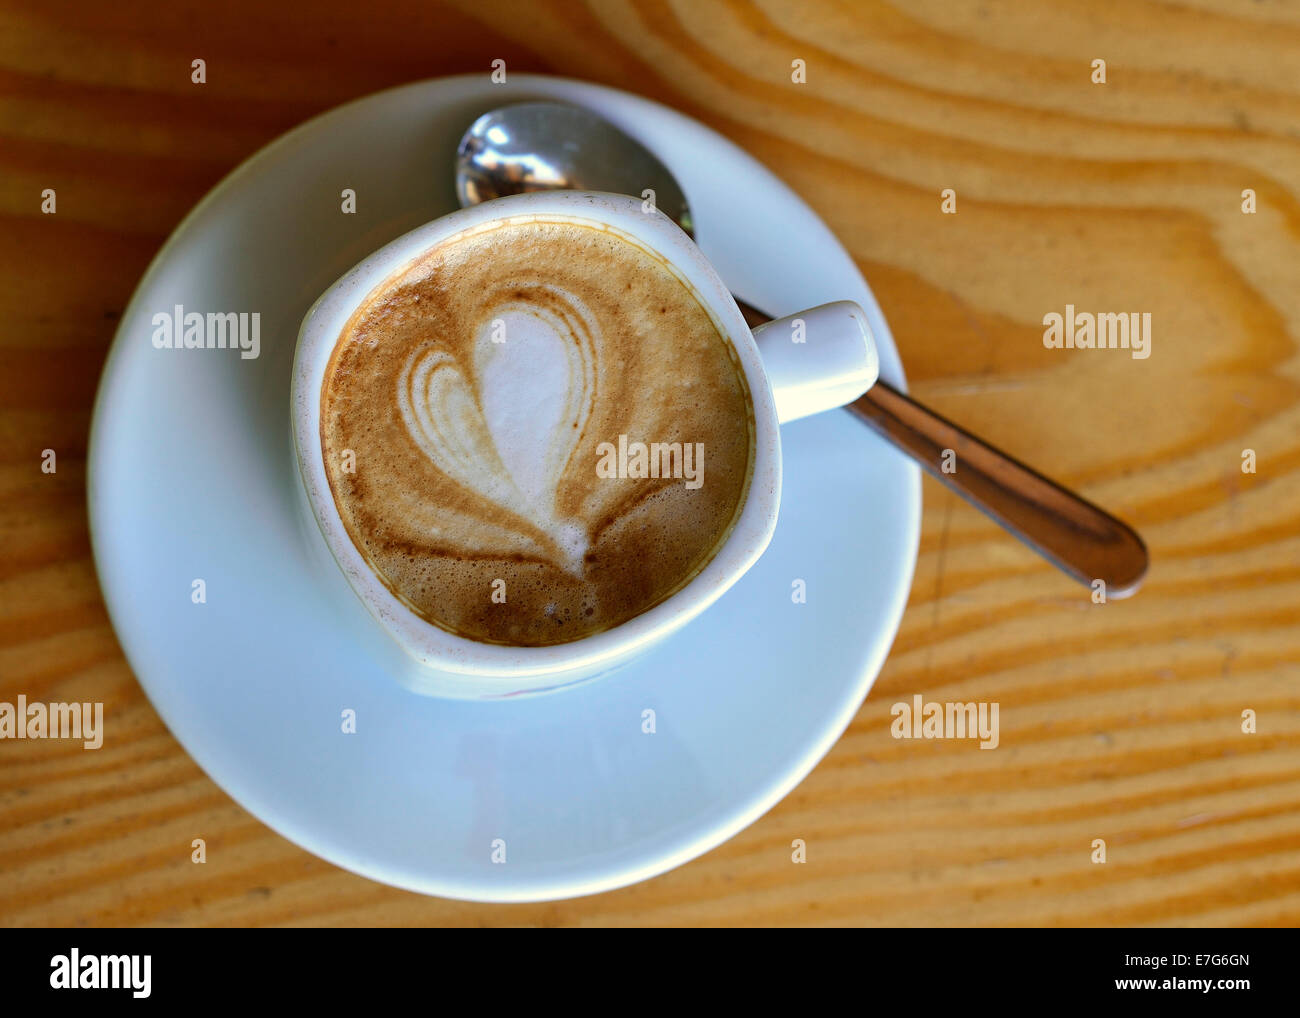 Cup of cappuccino with milk foam in a heart shape - Stock Image